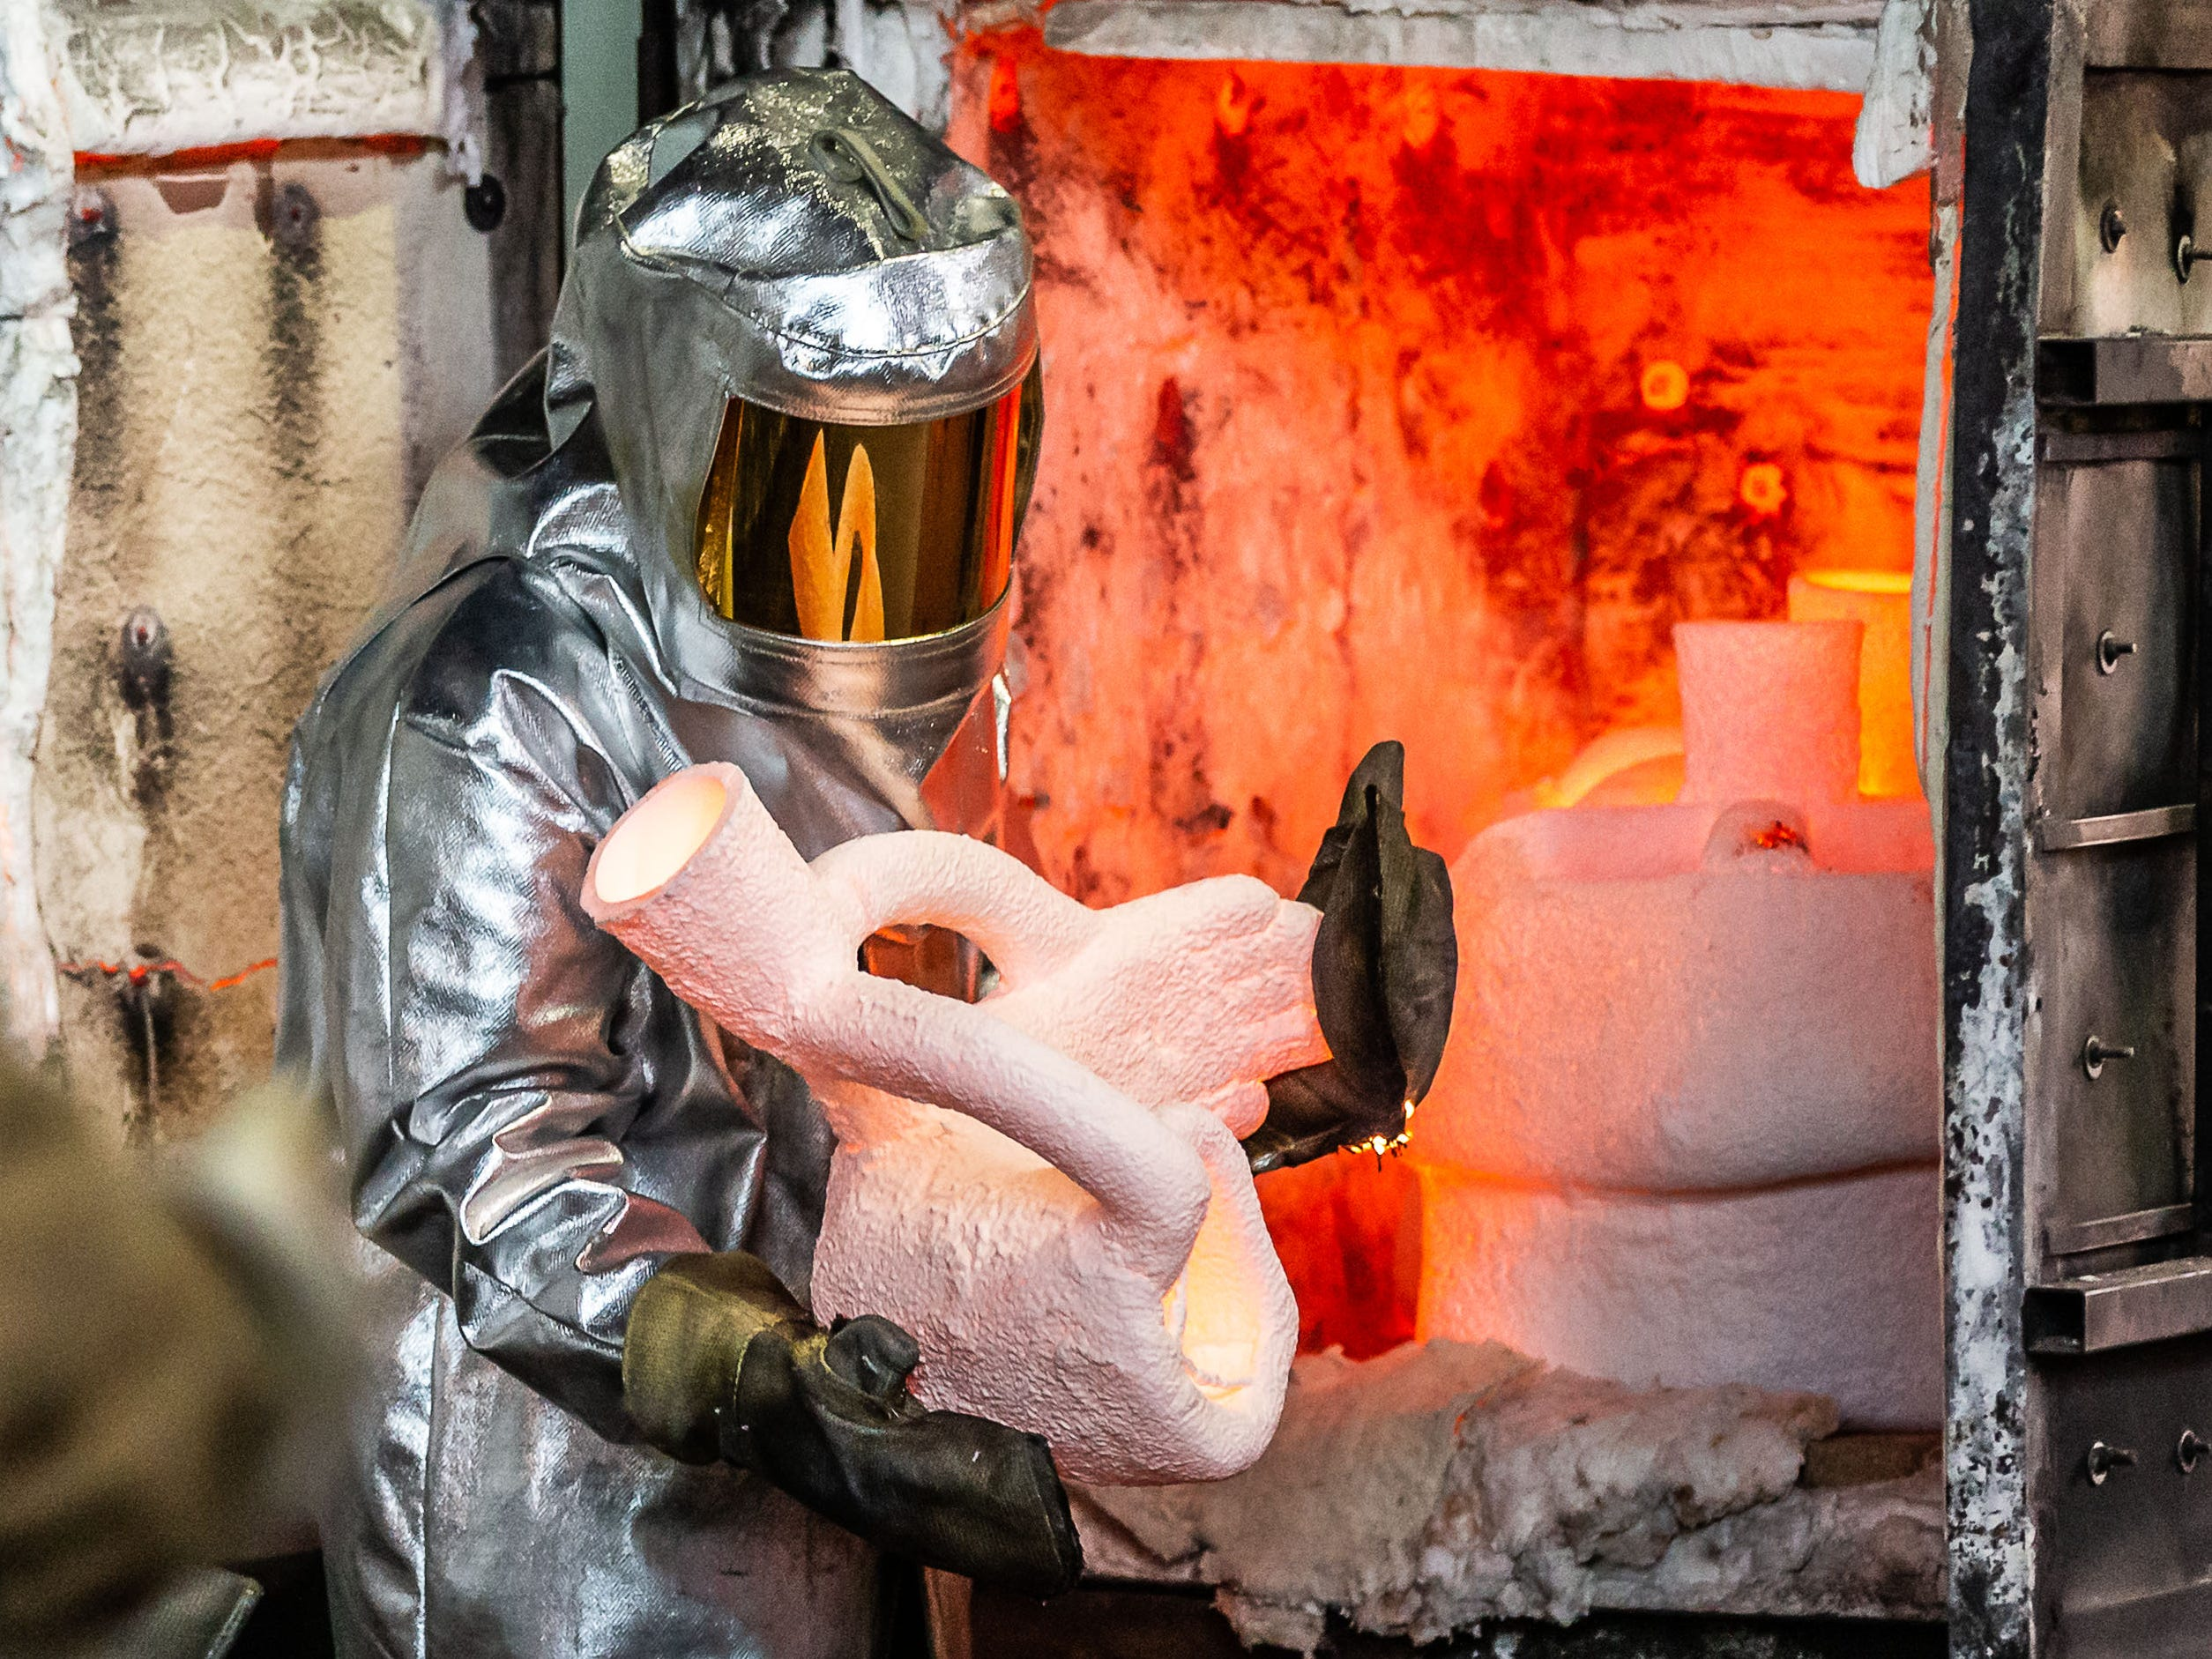 """A metal worker at Vanguard Sculpture Services in Milwaukee removes pre-heated mold shells from a kiln prior to pouring components of """"Da Crusher"""" bronze statue on Wednesday, March 27, 2019."""